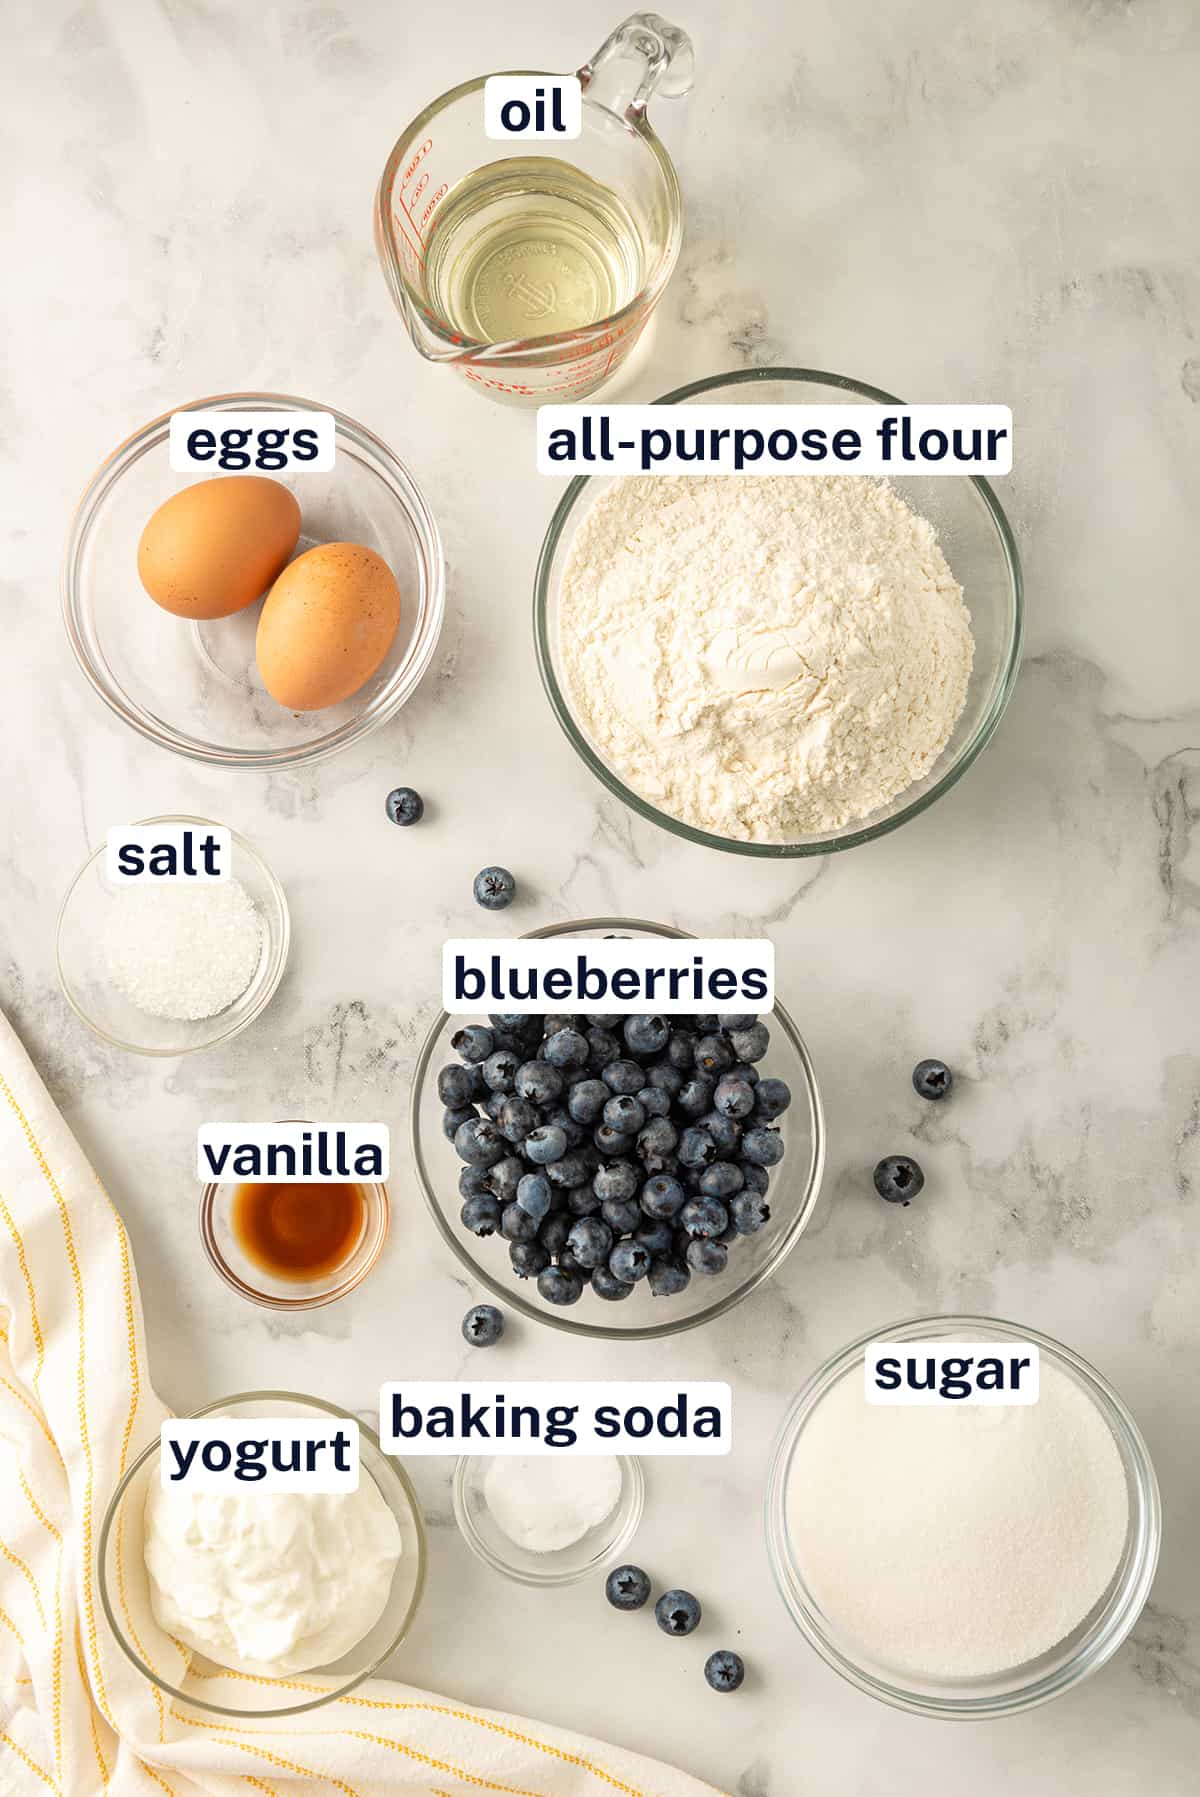 All ingredients needed to make Blueberry muffins with text overlay.